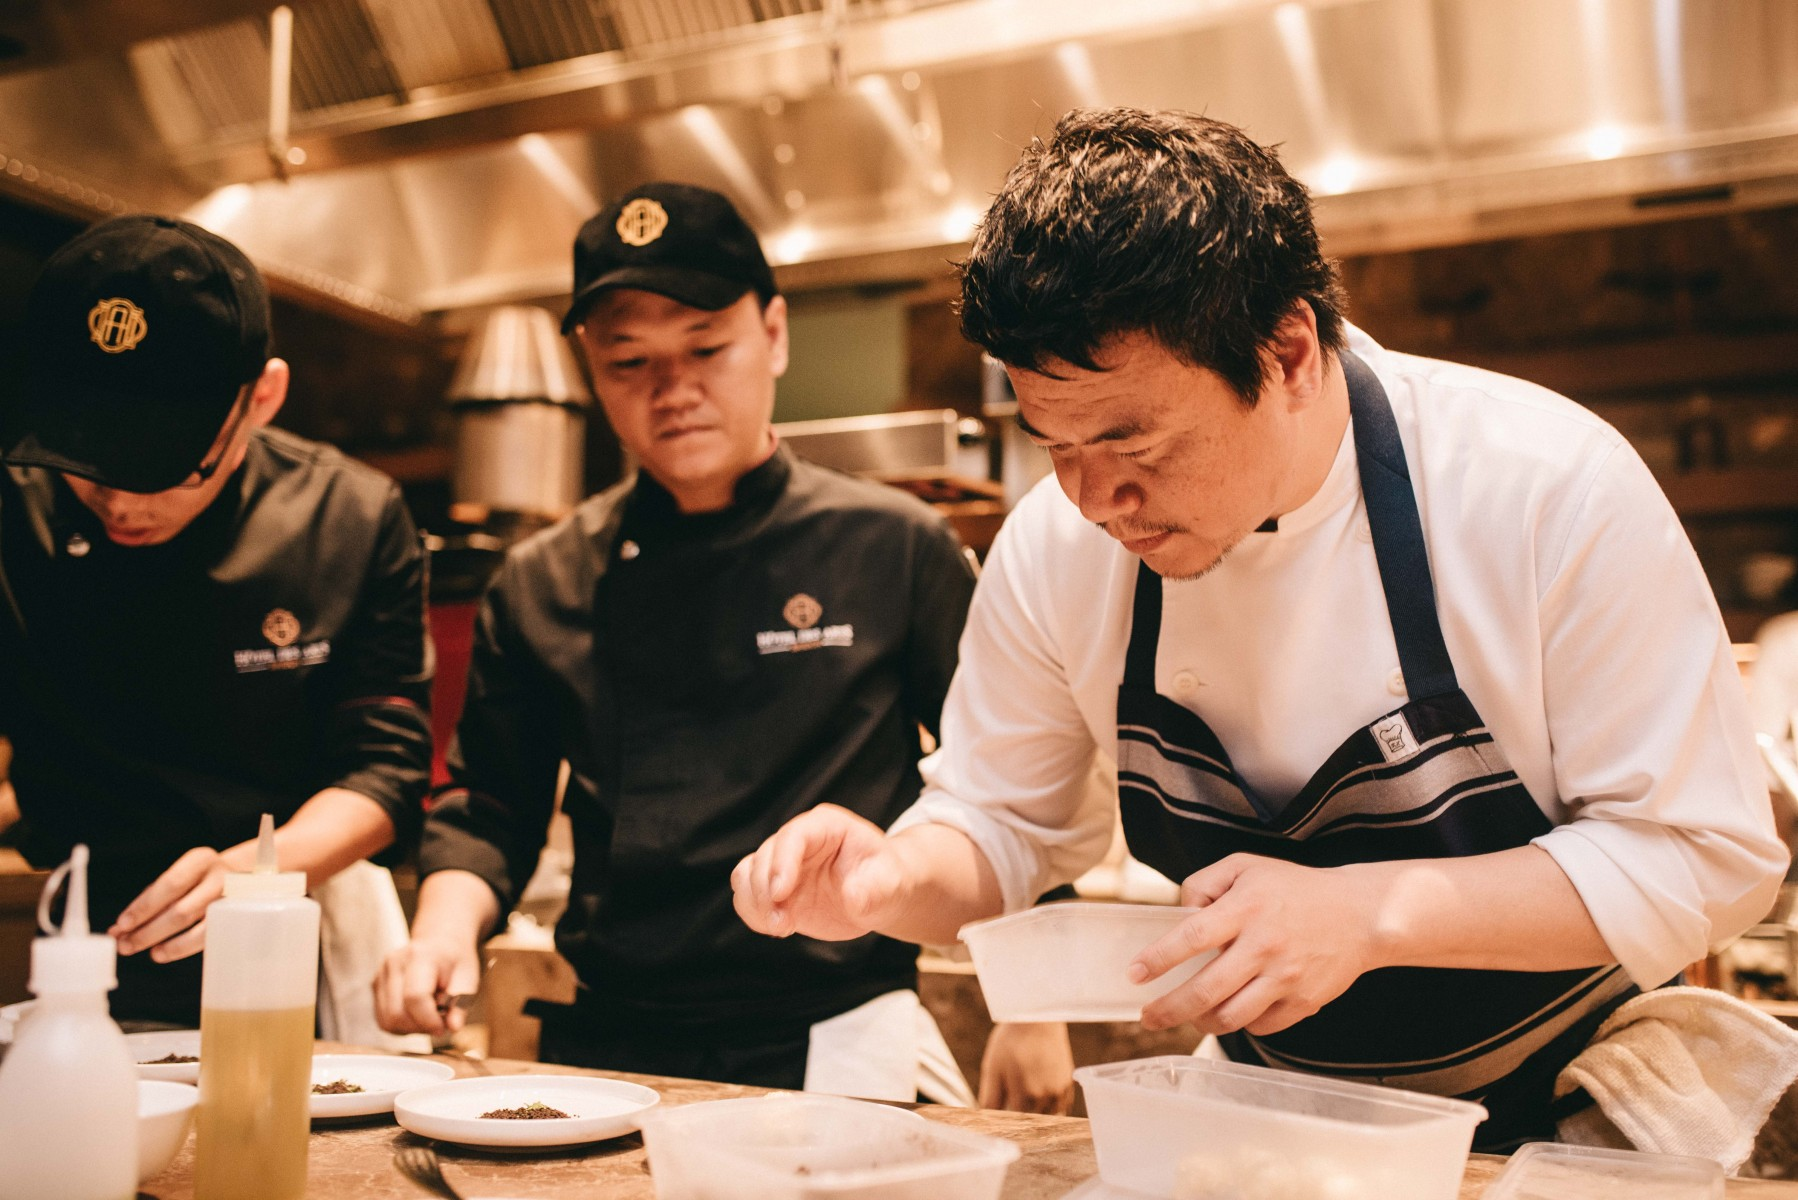 dine-with-celebrity-star-chef-yuichi-kamimura-right-above-saigon